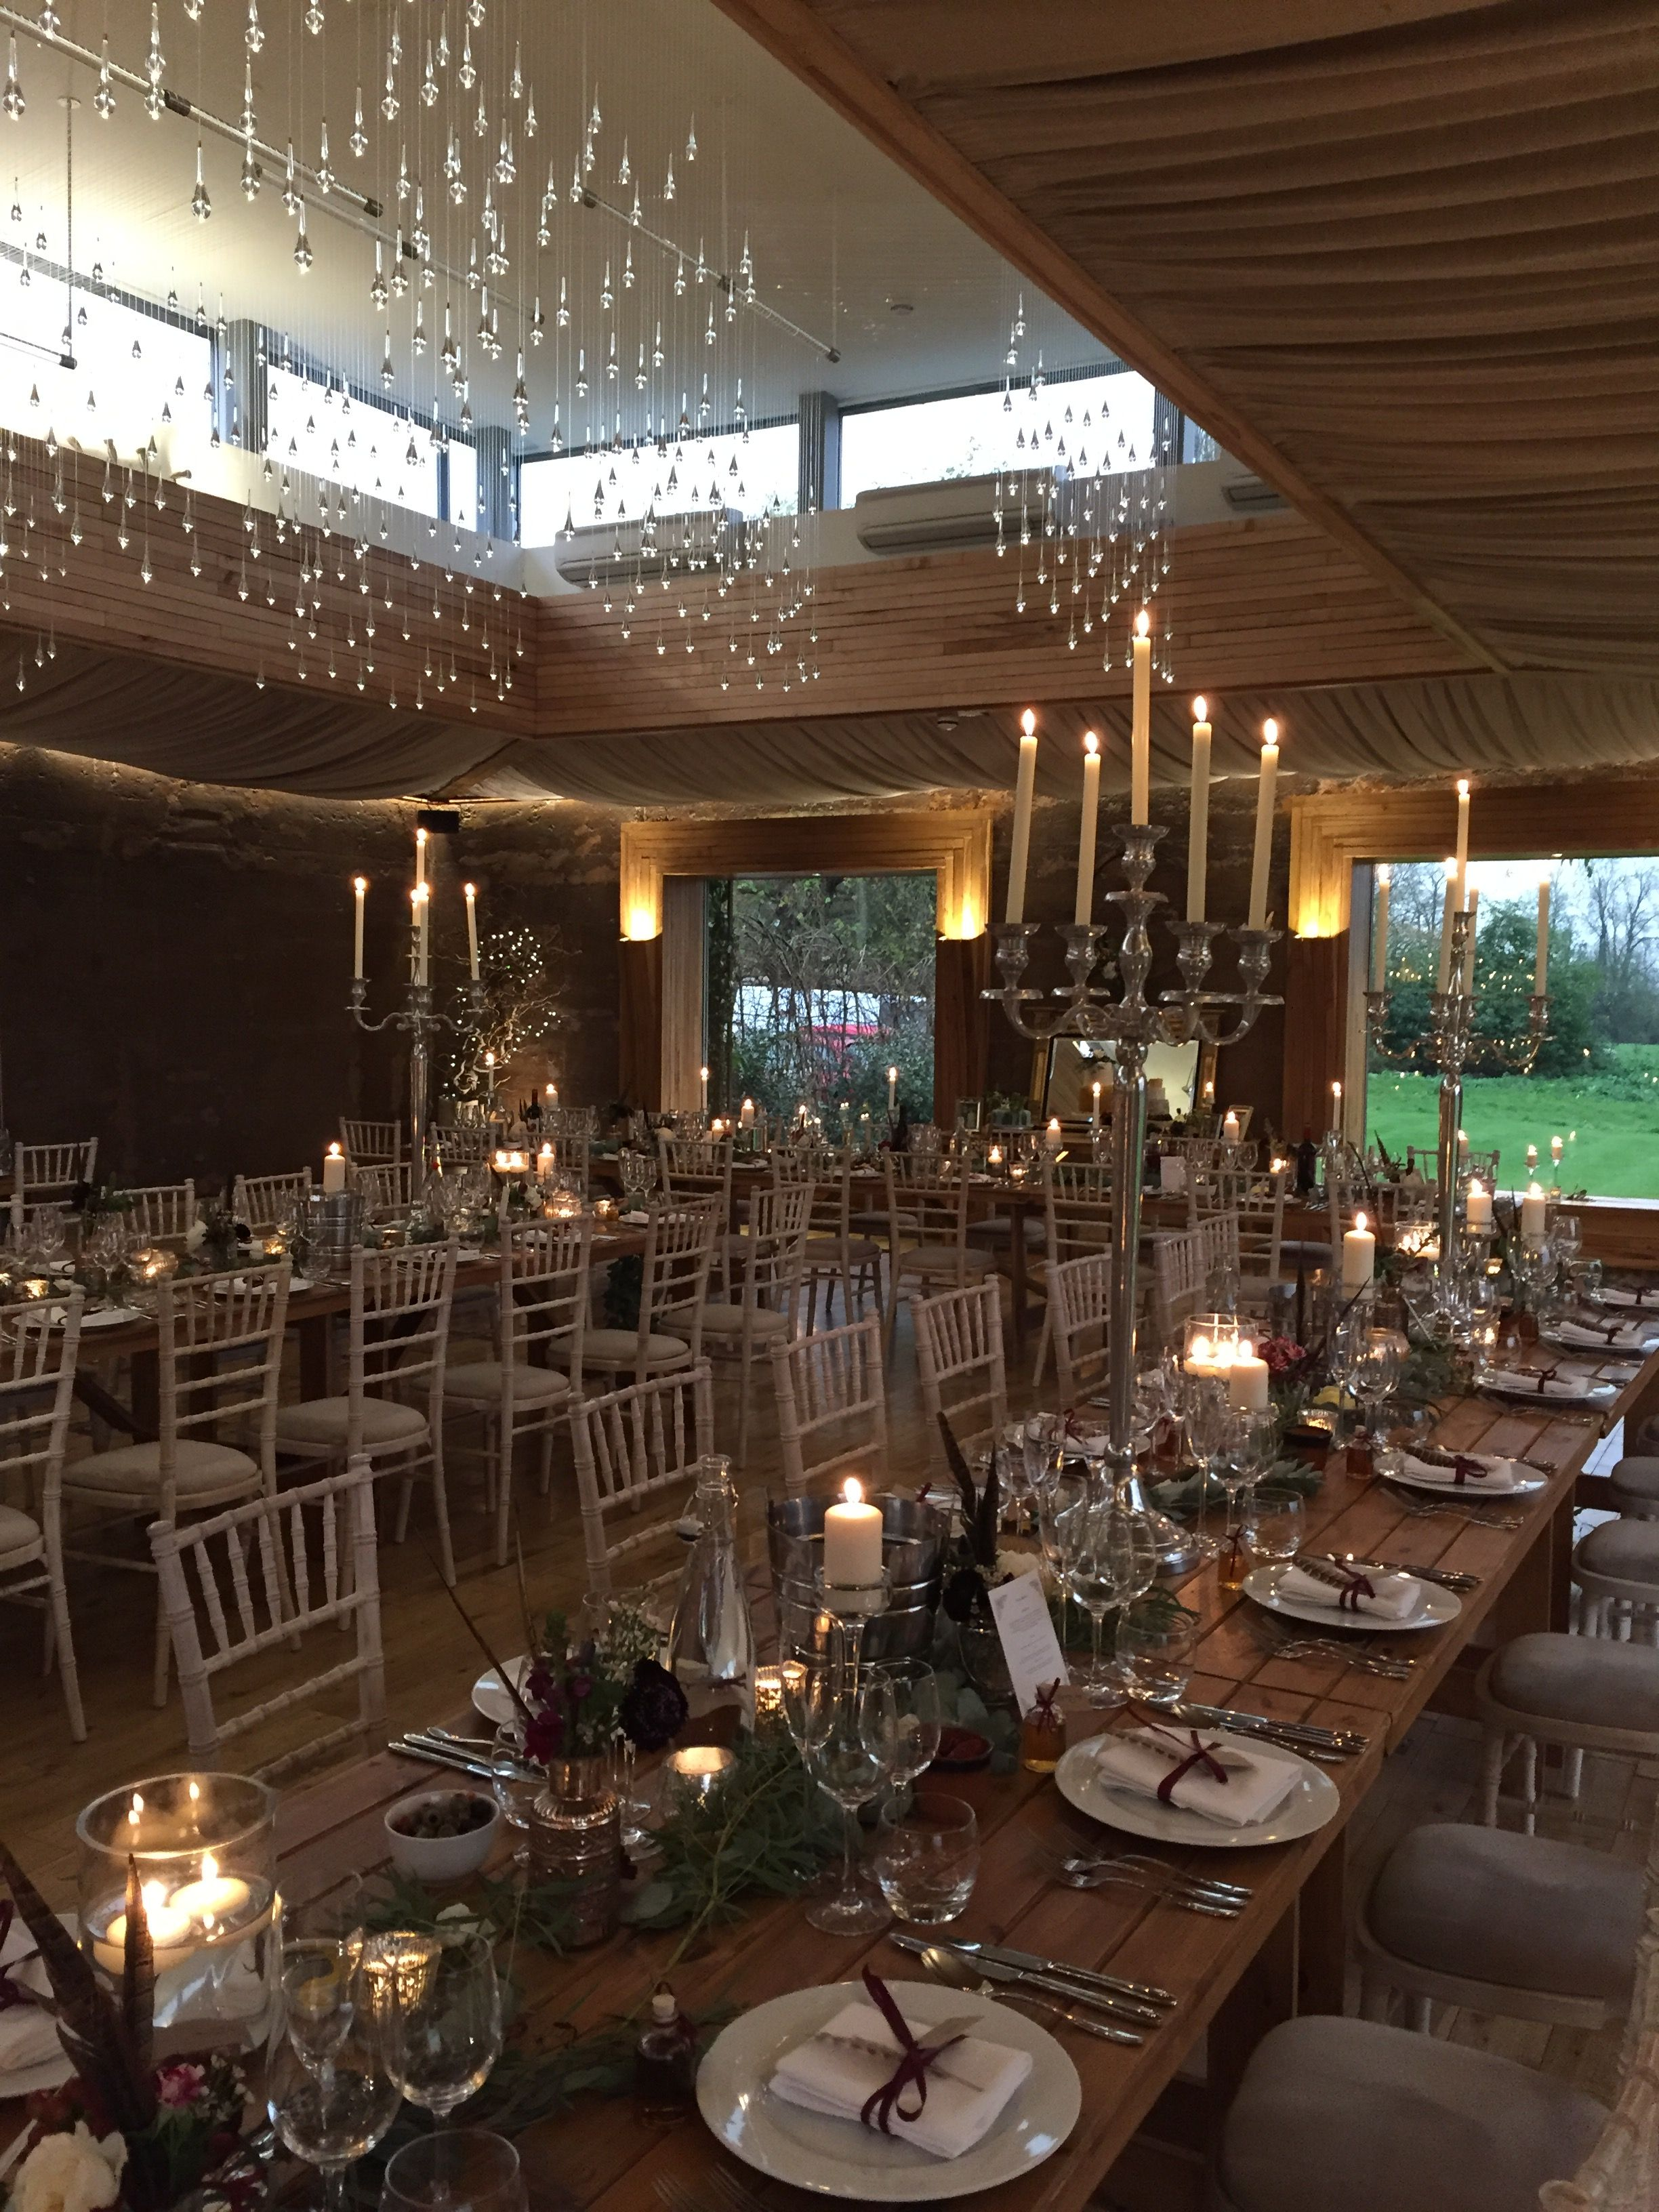 Elmore Court Stunning With Long Tables And